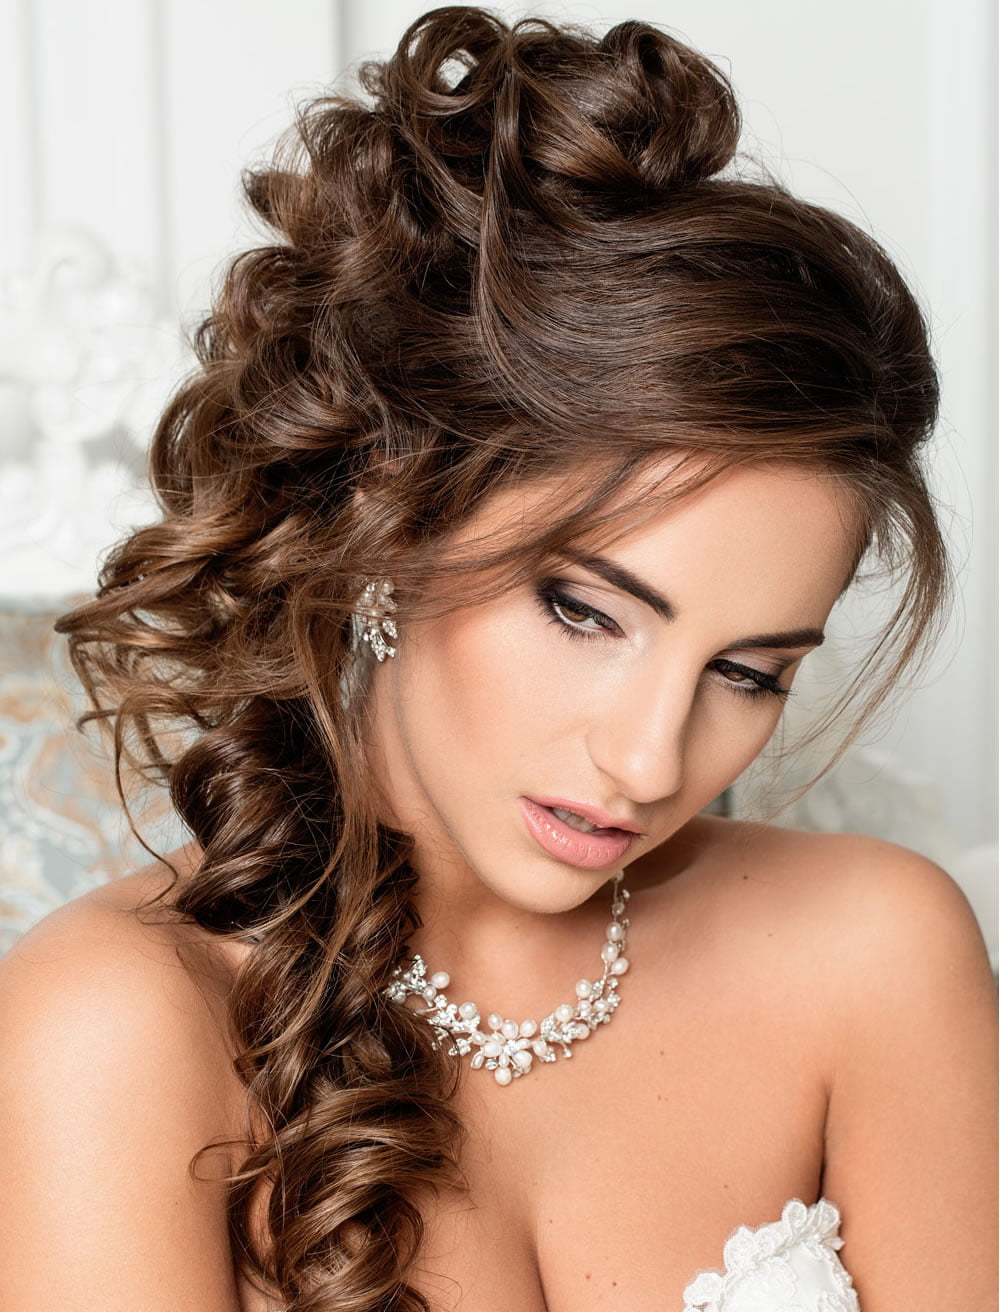 Very Stylish Wedding Hairstyles for Long Hair 2018